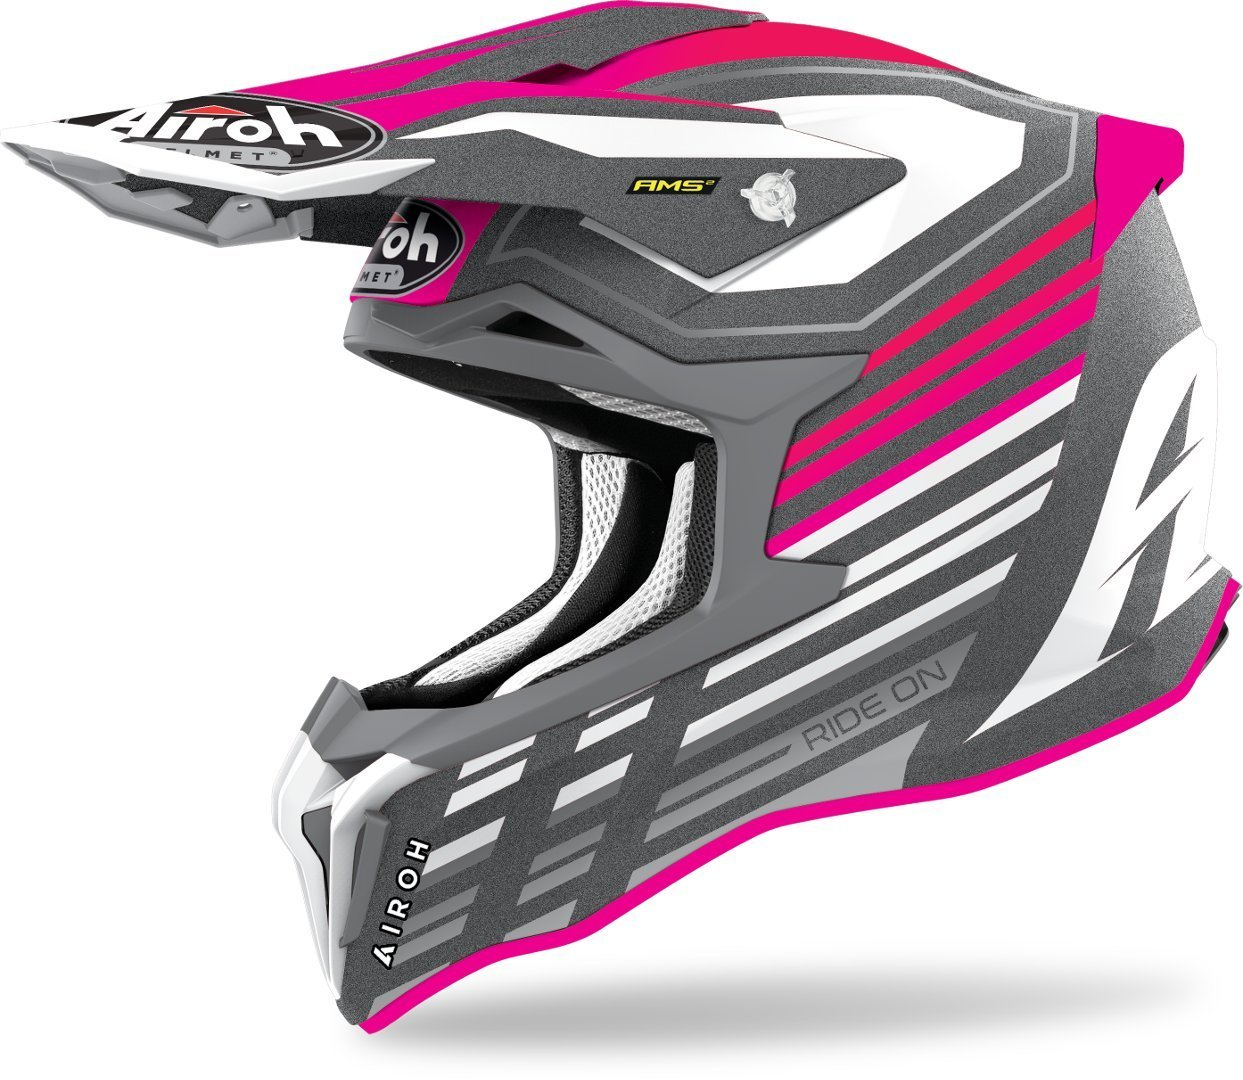 Airoh Strycker Shaded Carbon Motocross Helm, pink, Größe XS, pink, Größe XS